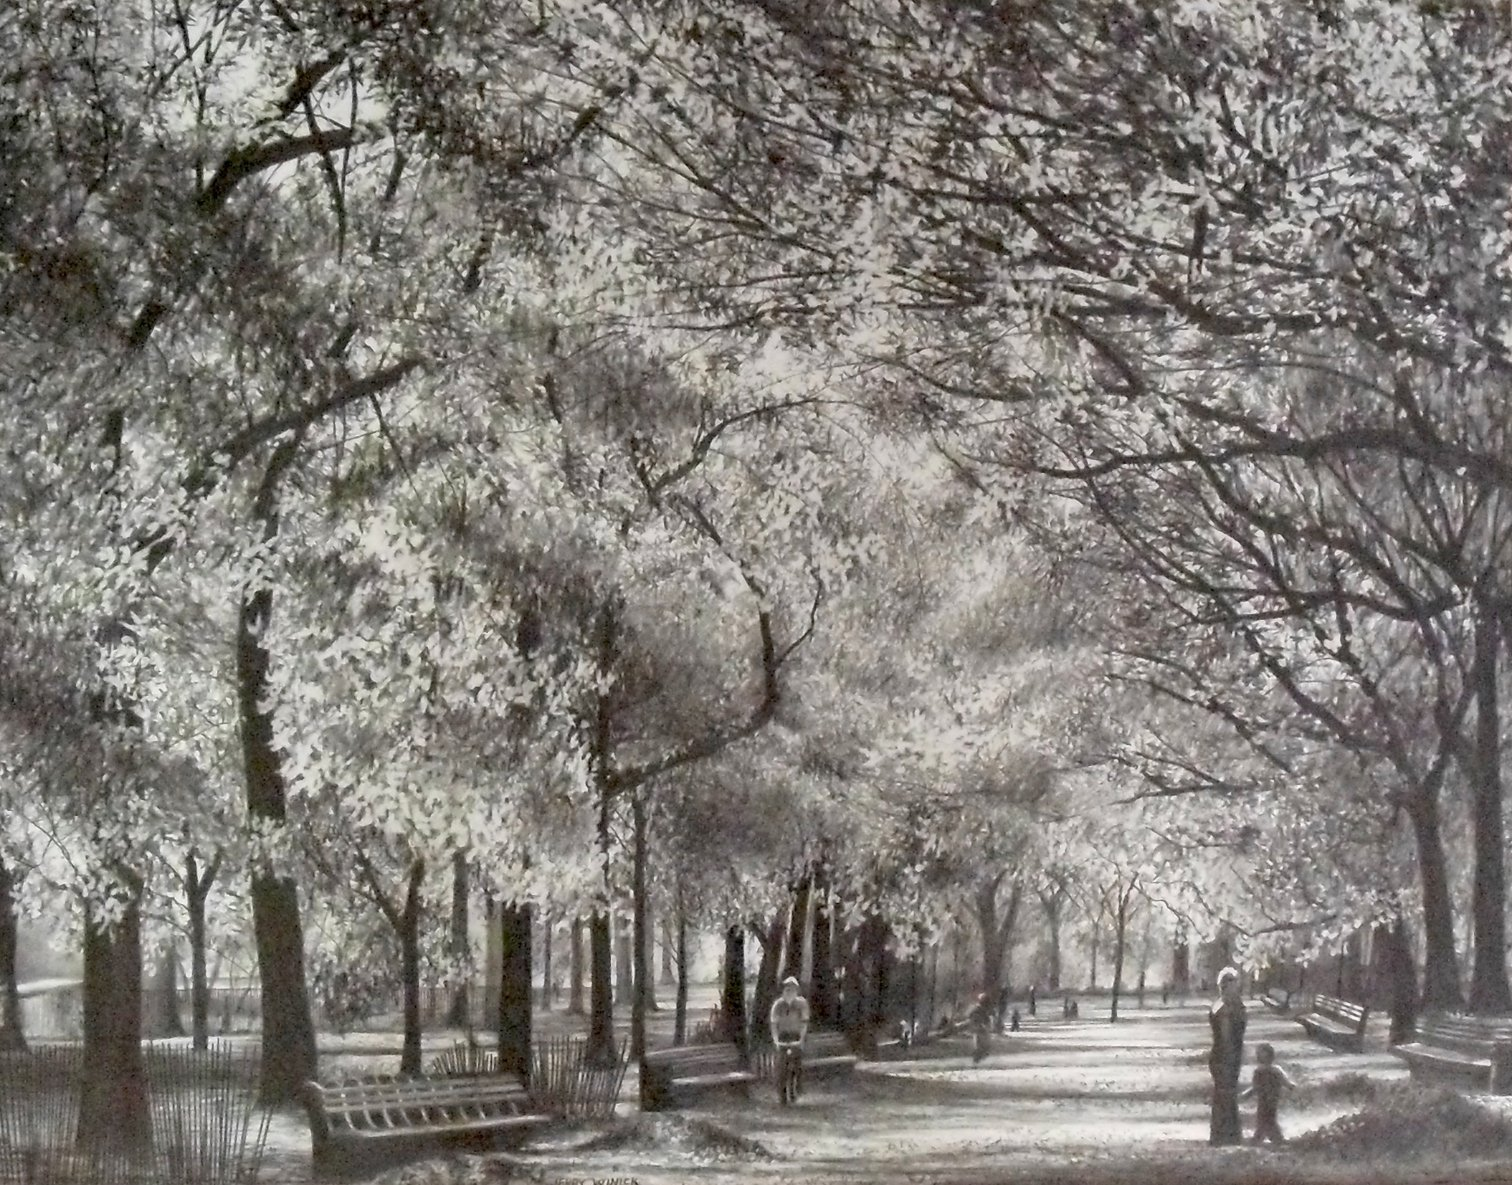 Autumn in New York by Pencilworks Studio- Pencil Drawings by Jerry Winick